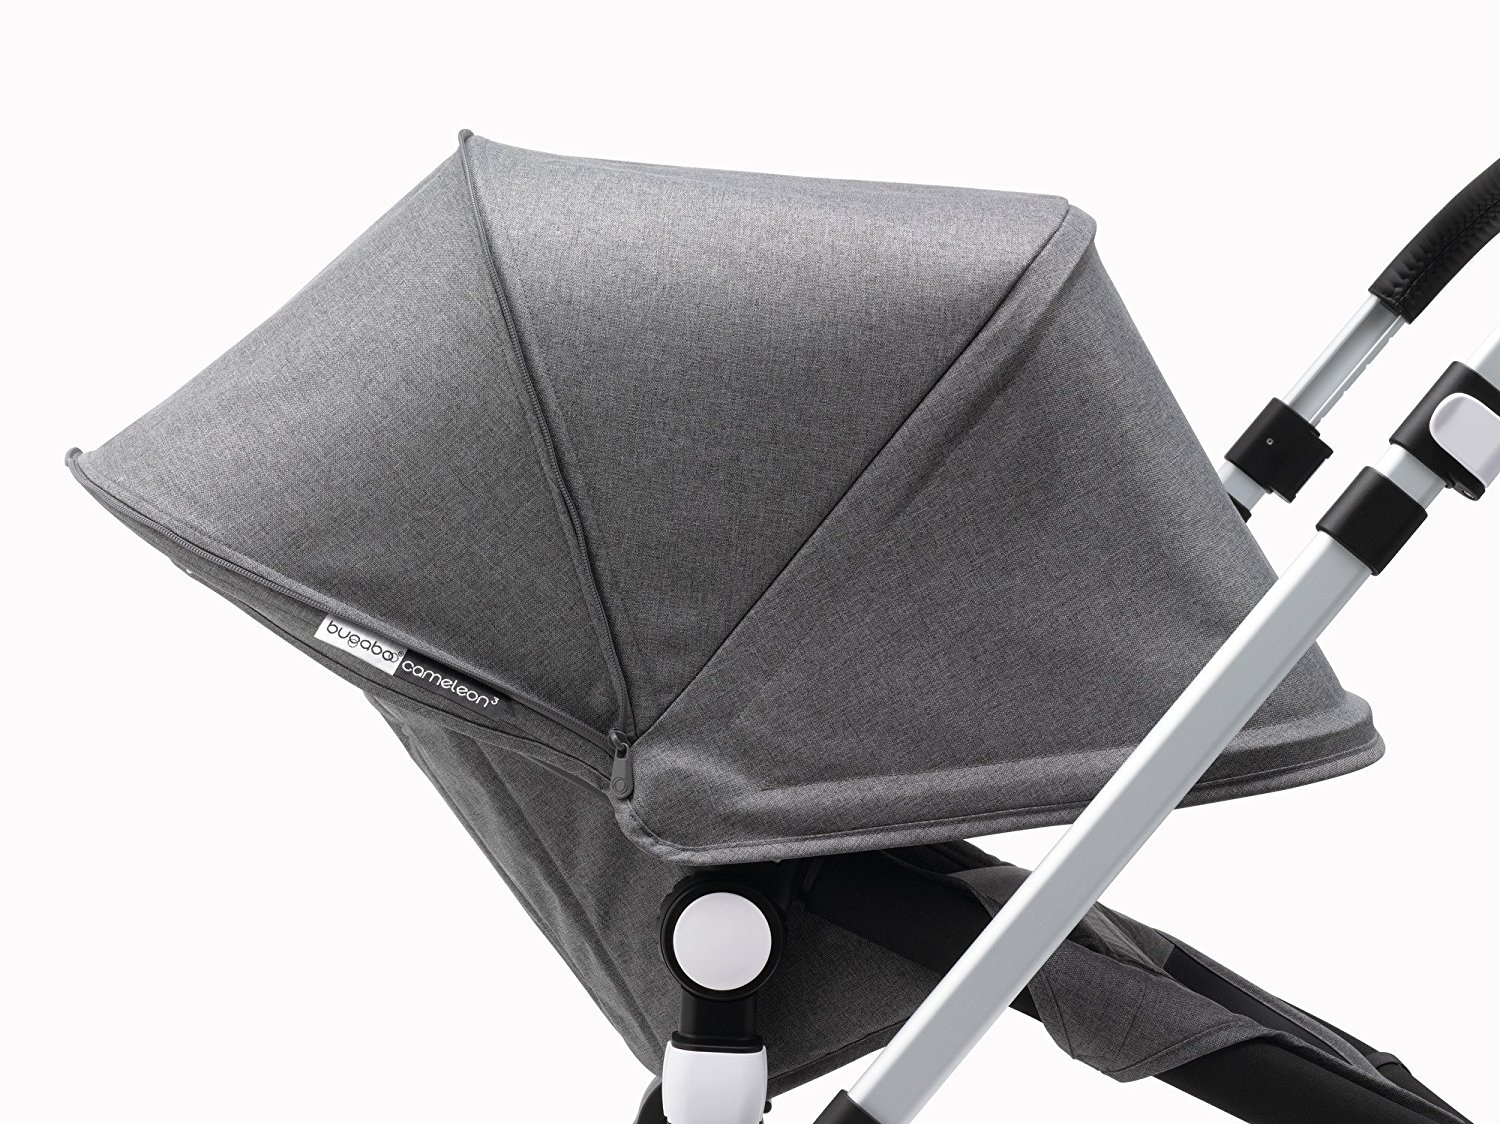 Stroller With Built In Bassinet Bugaboo Cameleon 3 Review